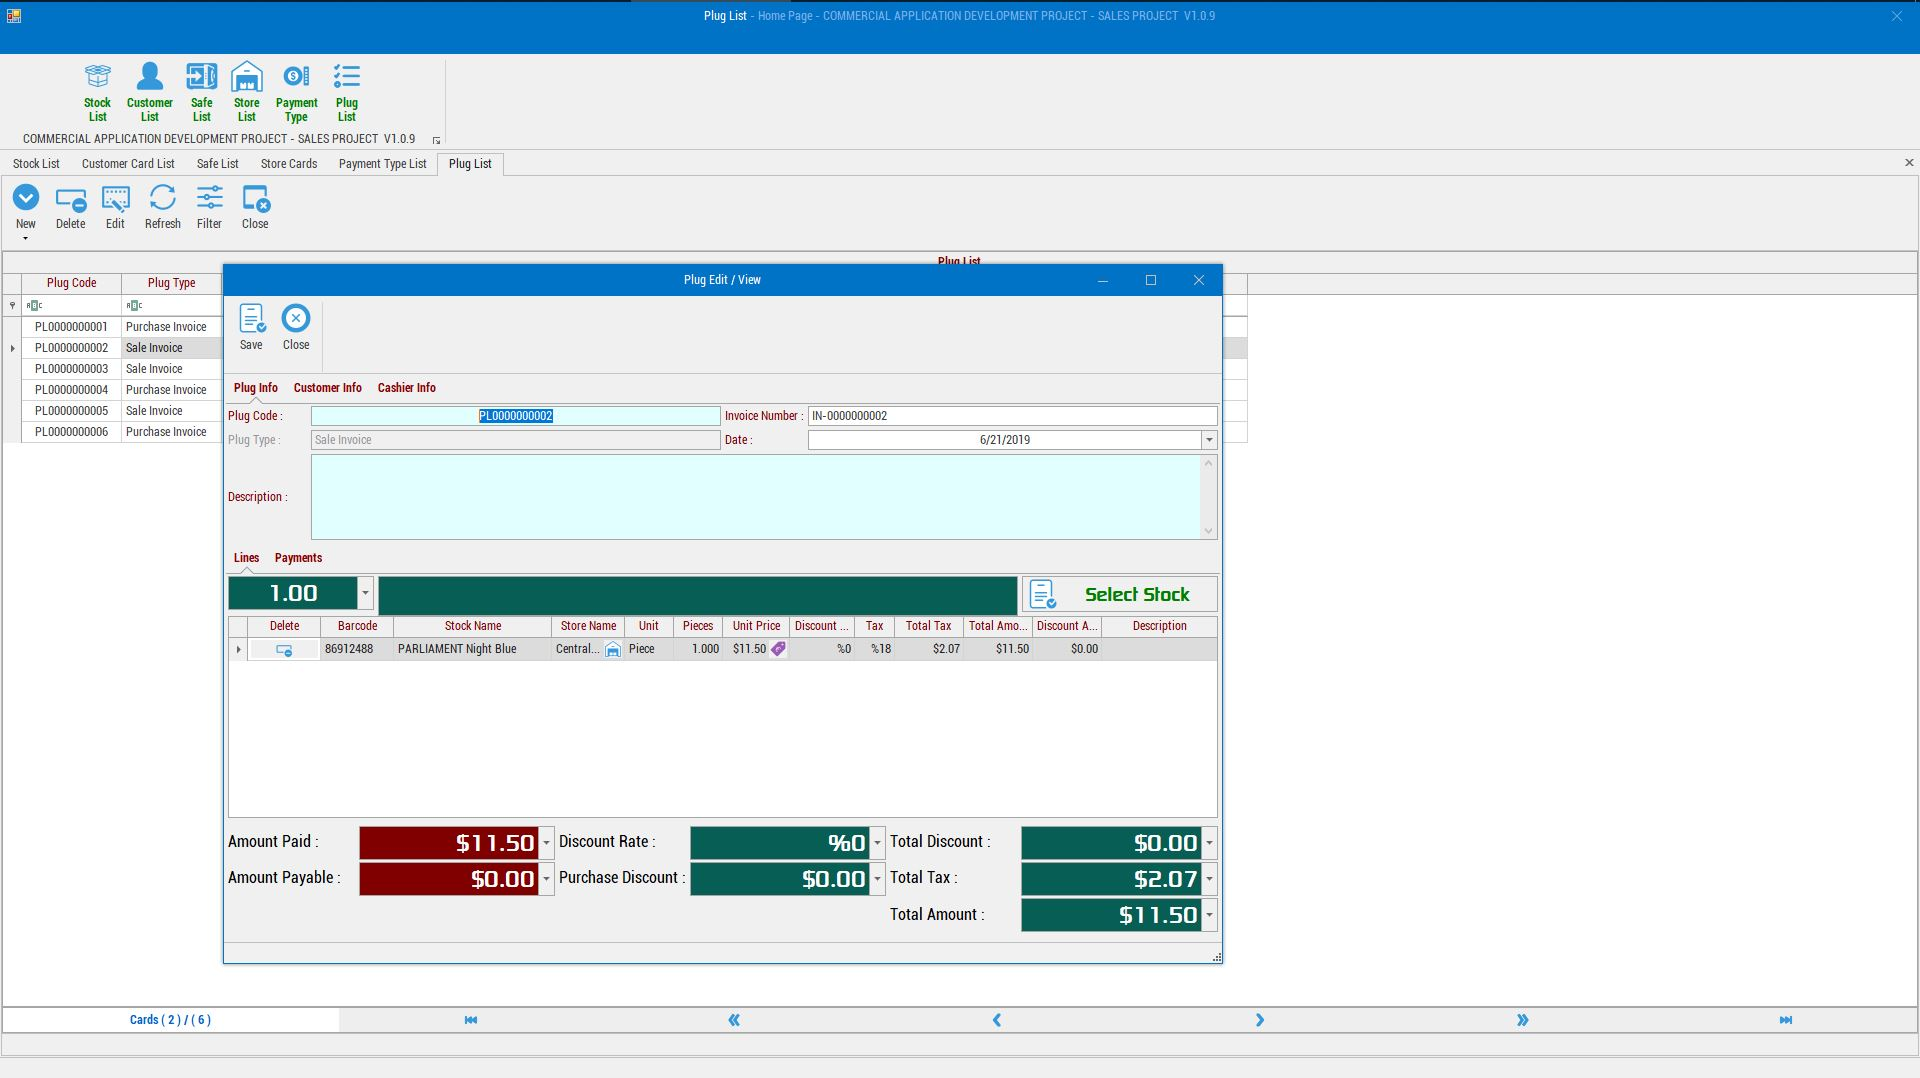 Point of Sale (POS) - Develop Commercial Automations with Entity Framework,  Devexpress and C#